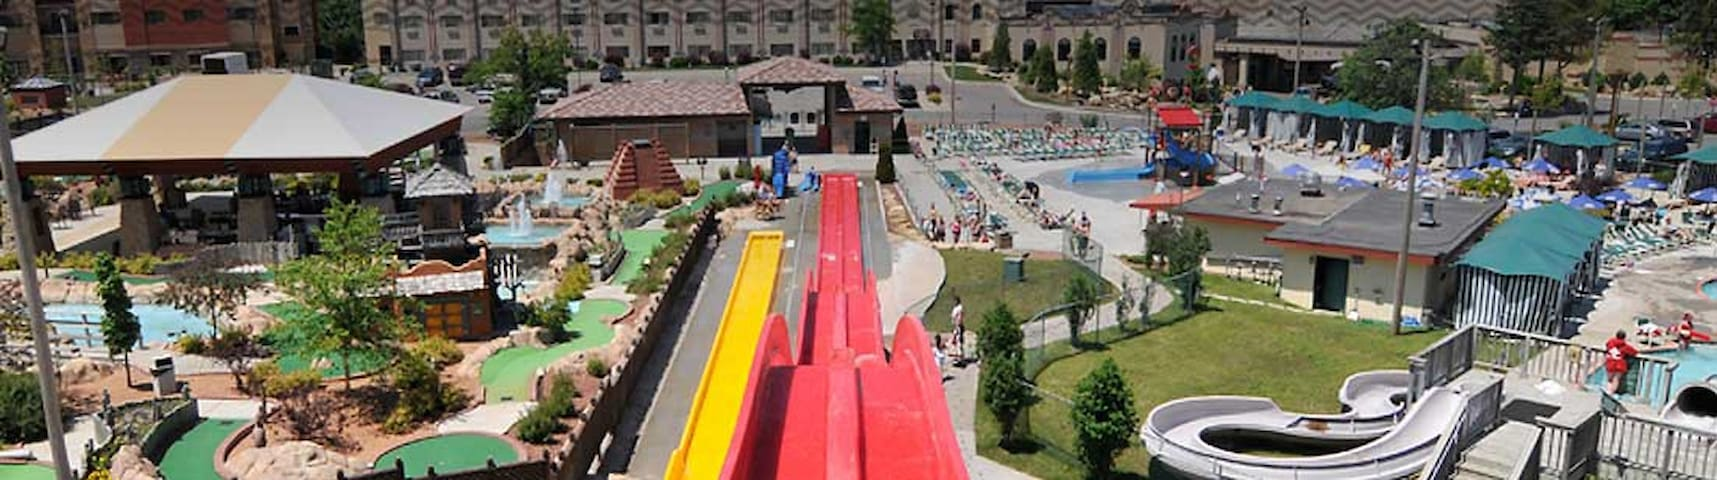 Amenities include access to water parks!